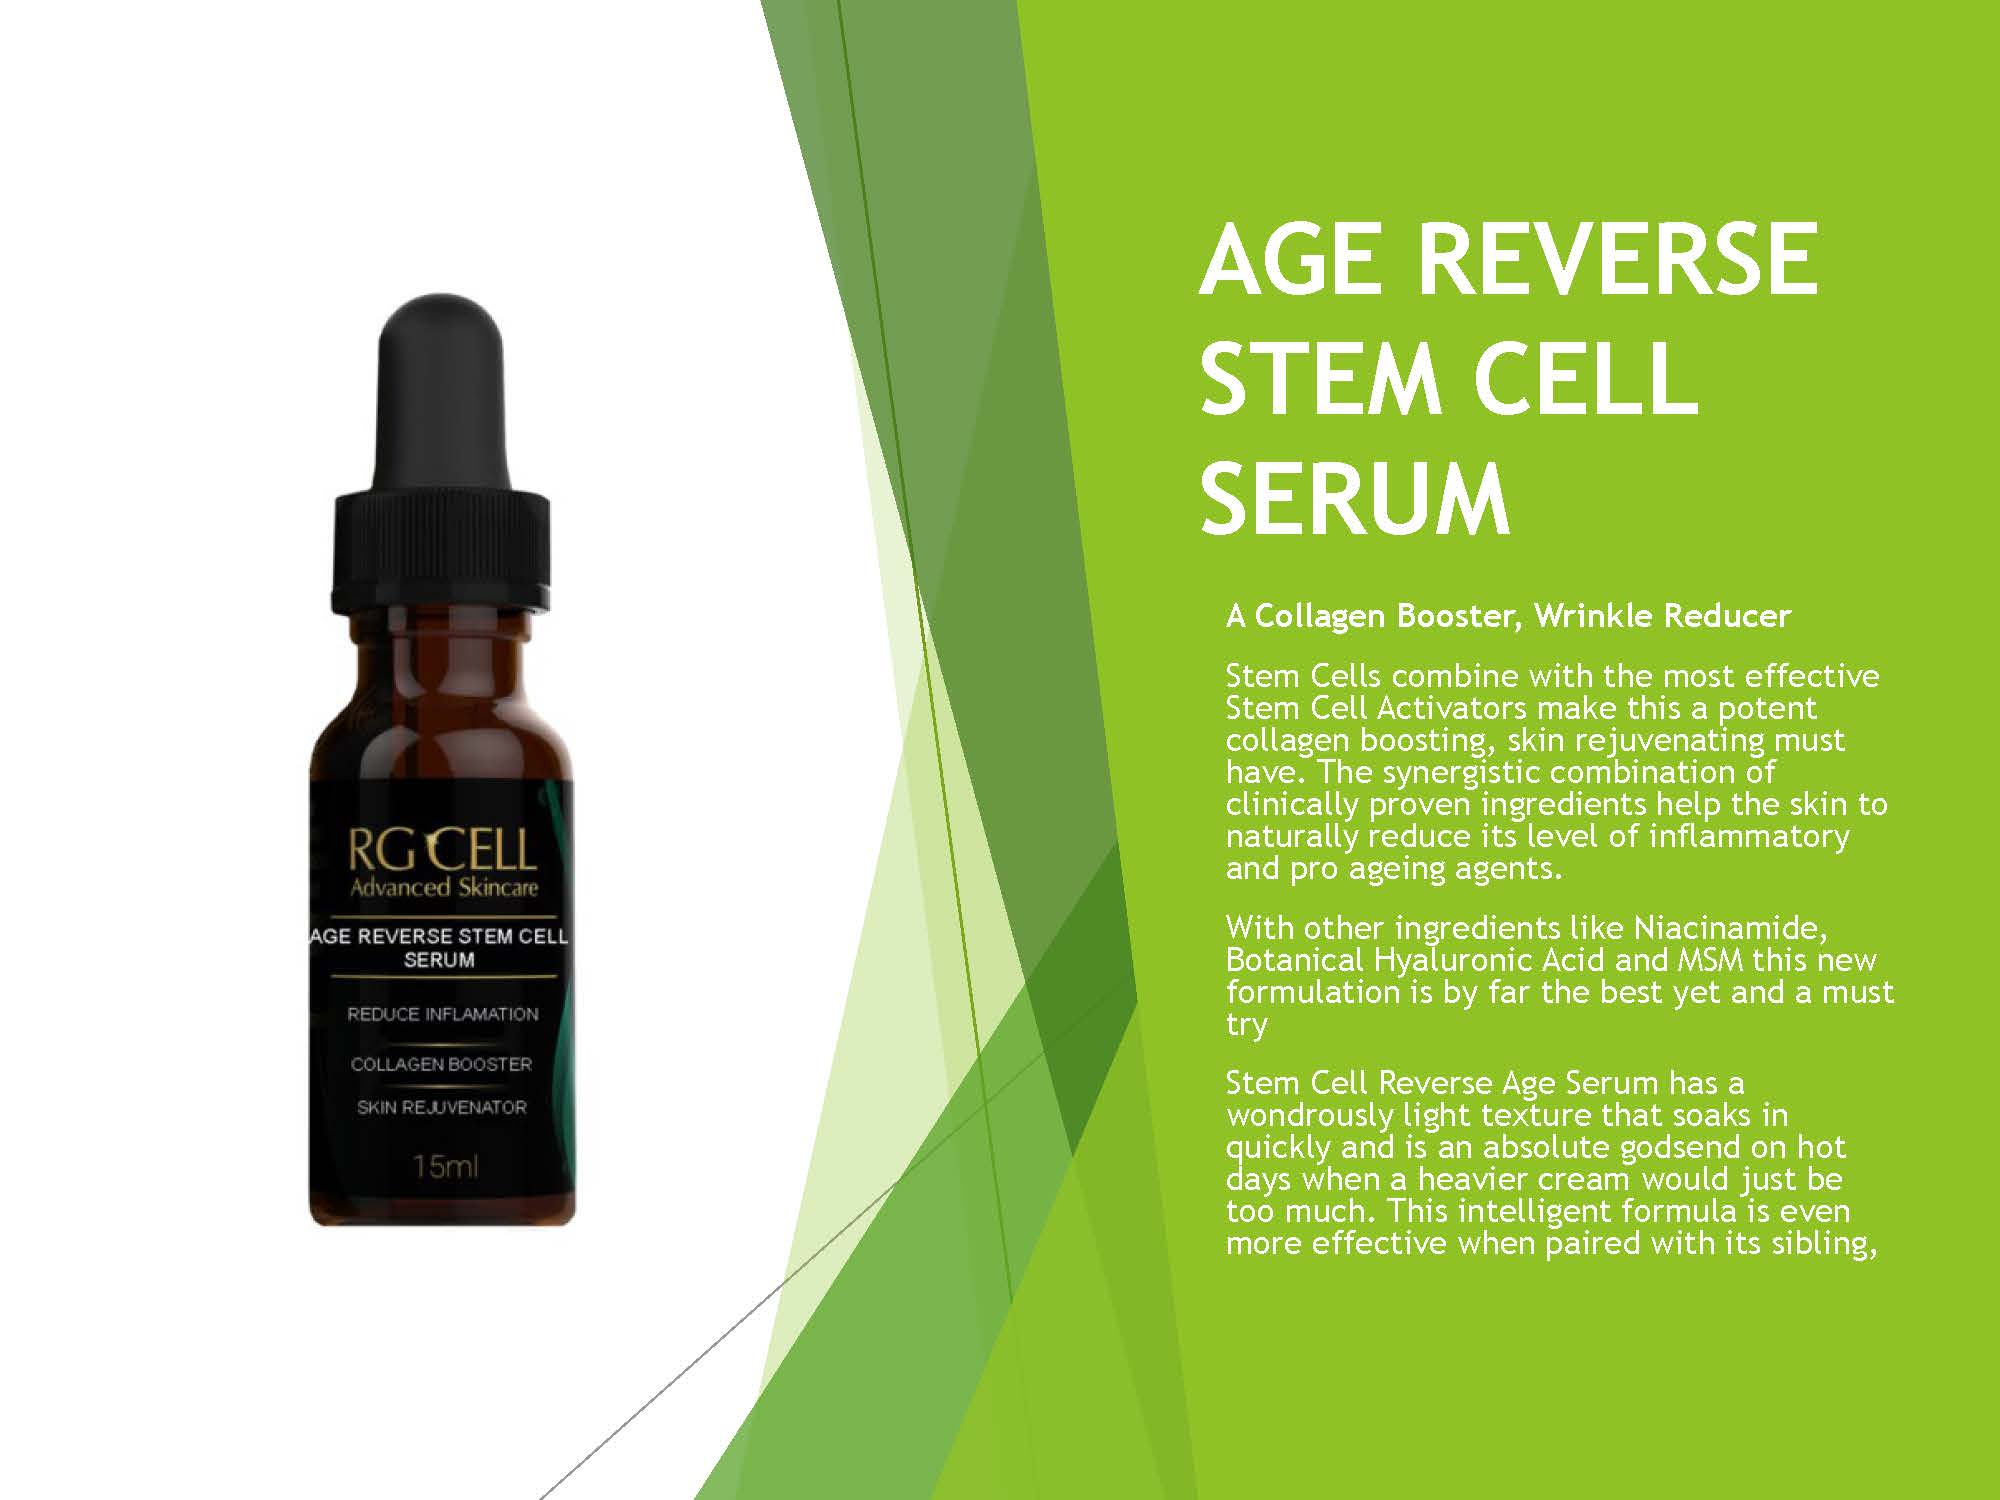 Age Reverse Stem Cell Serum